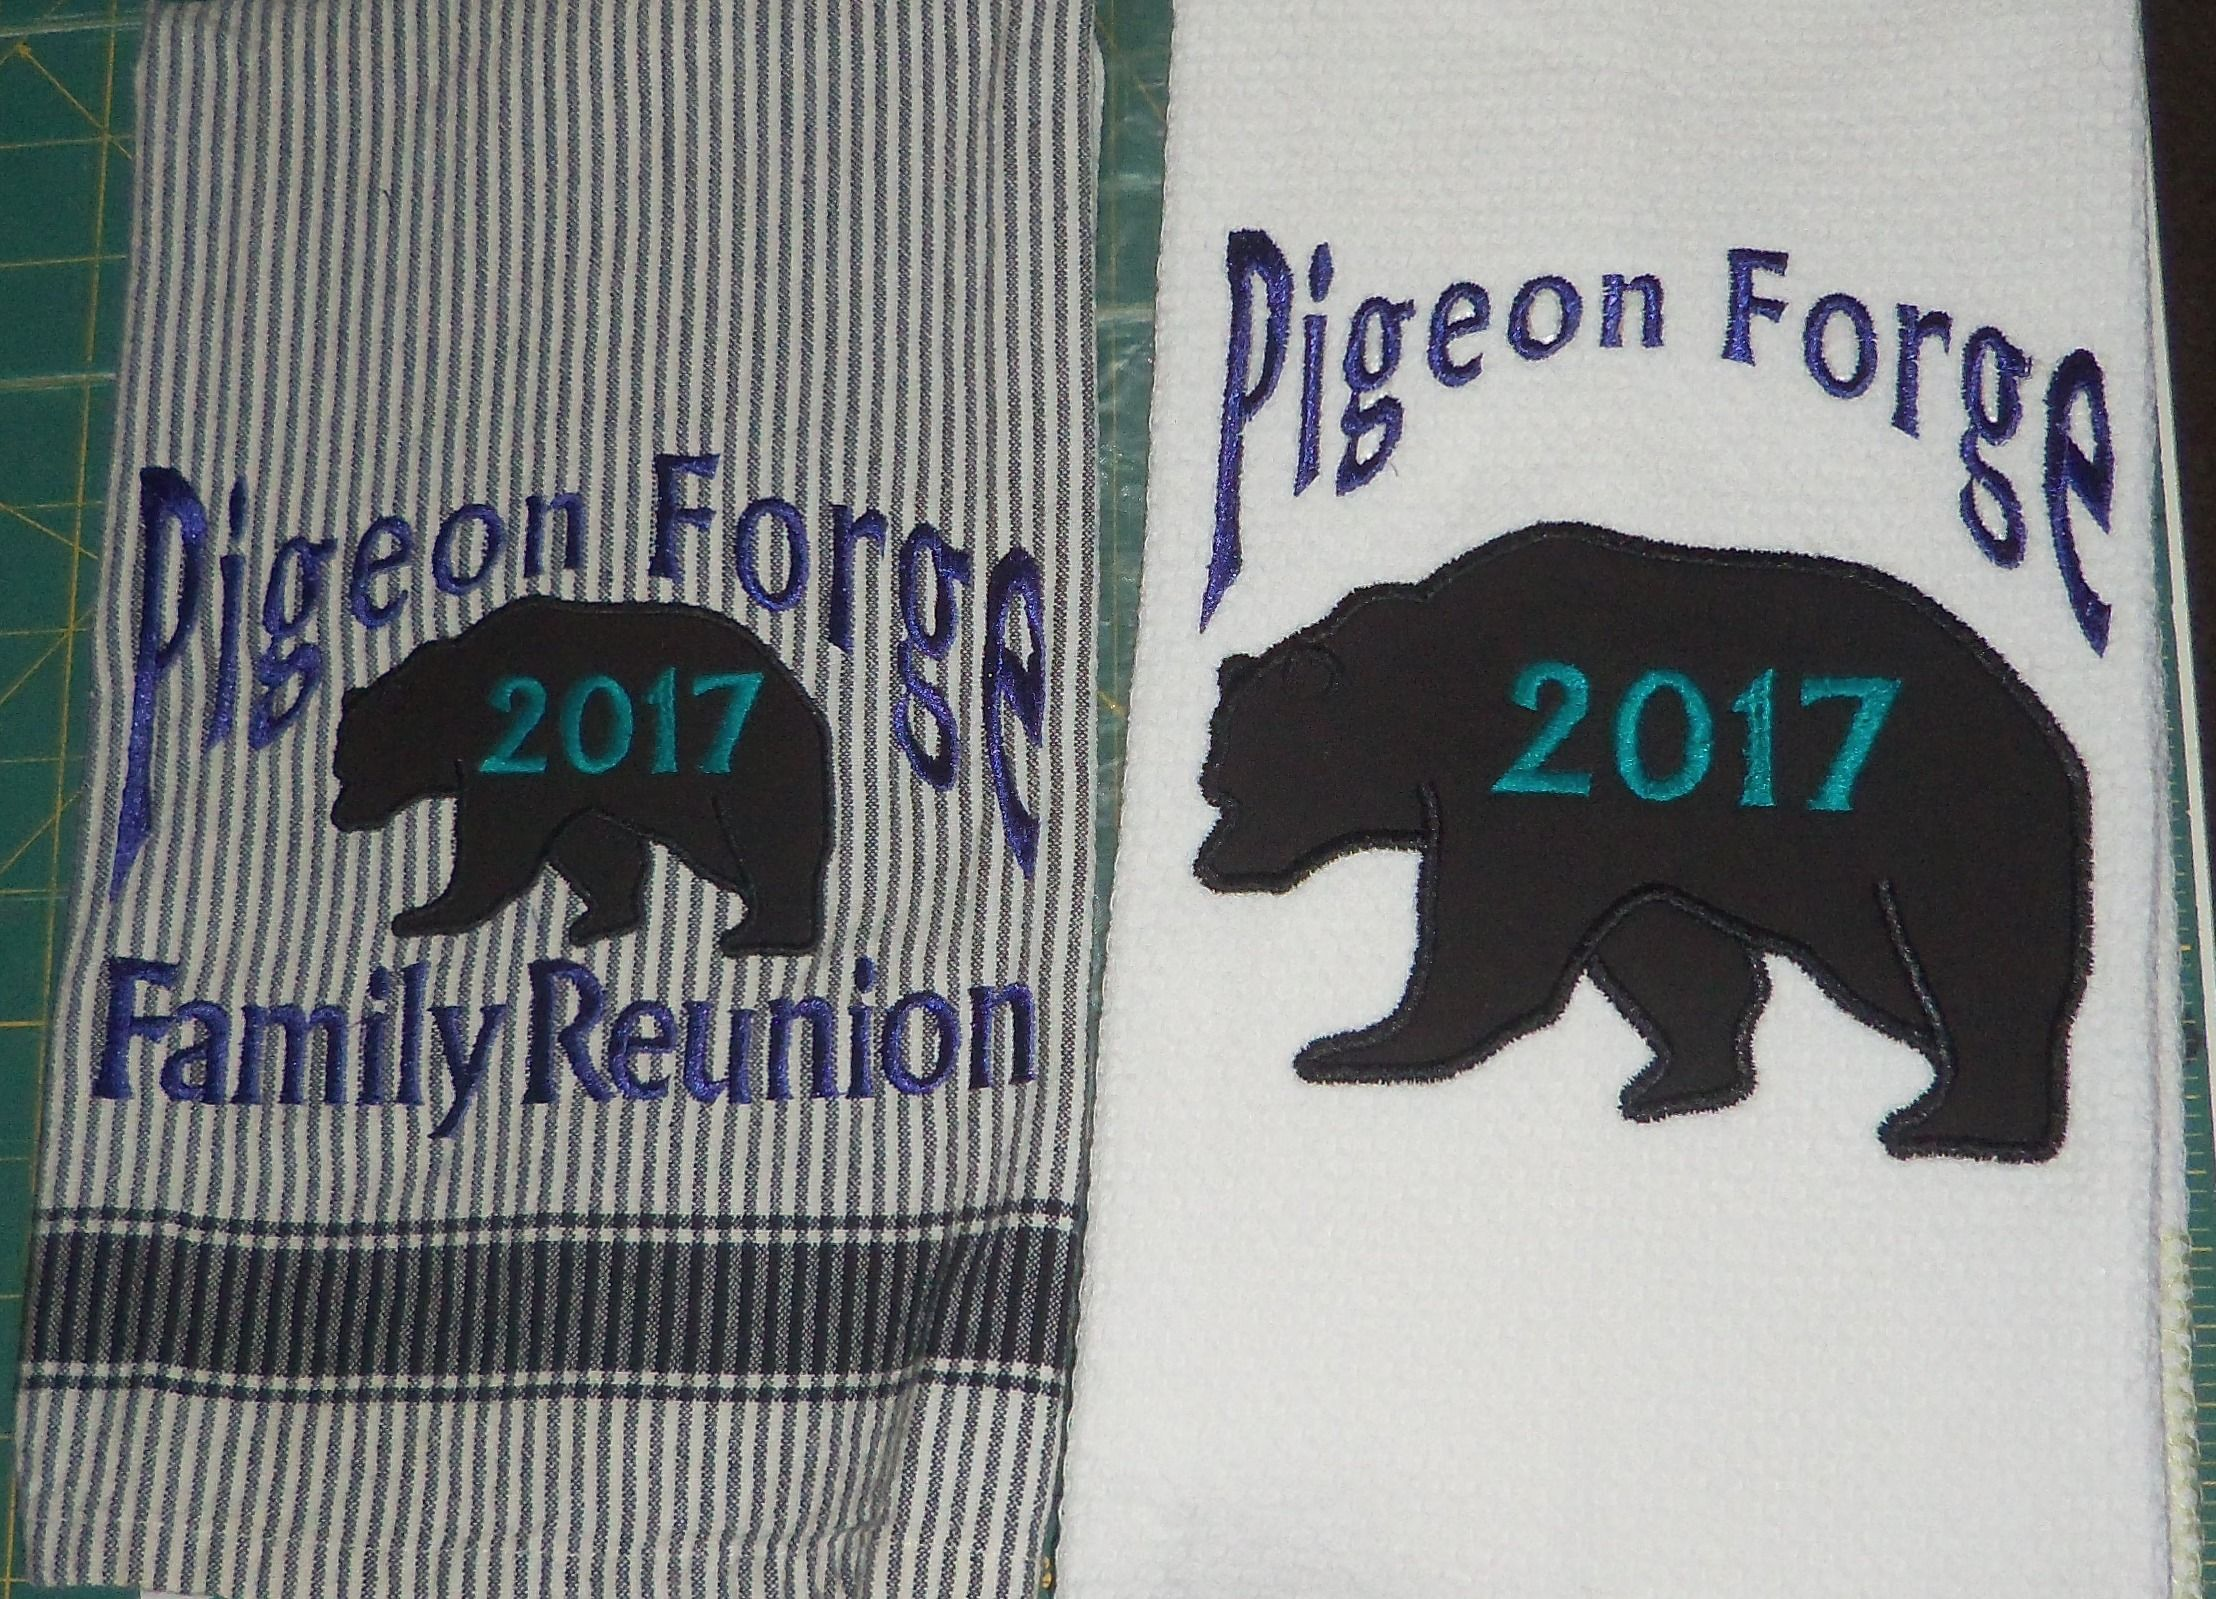 Yes We Can Even Personalize Kitchen Or Bathroom Towels For Your Family Vacations Or Reunions Family Reunion Family Vacation Reunion